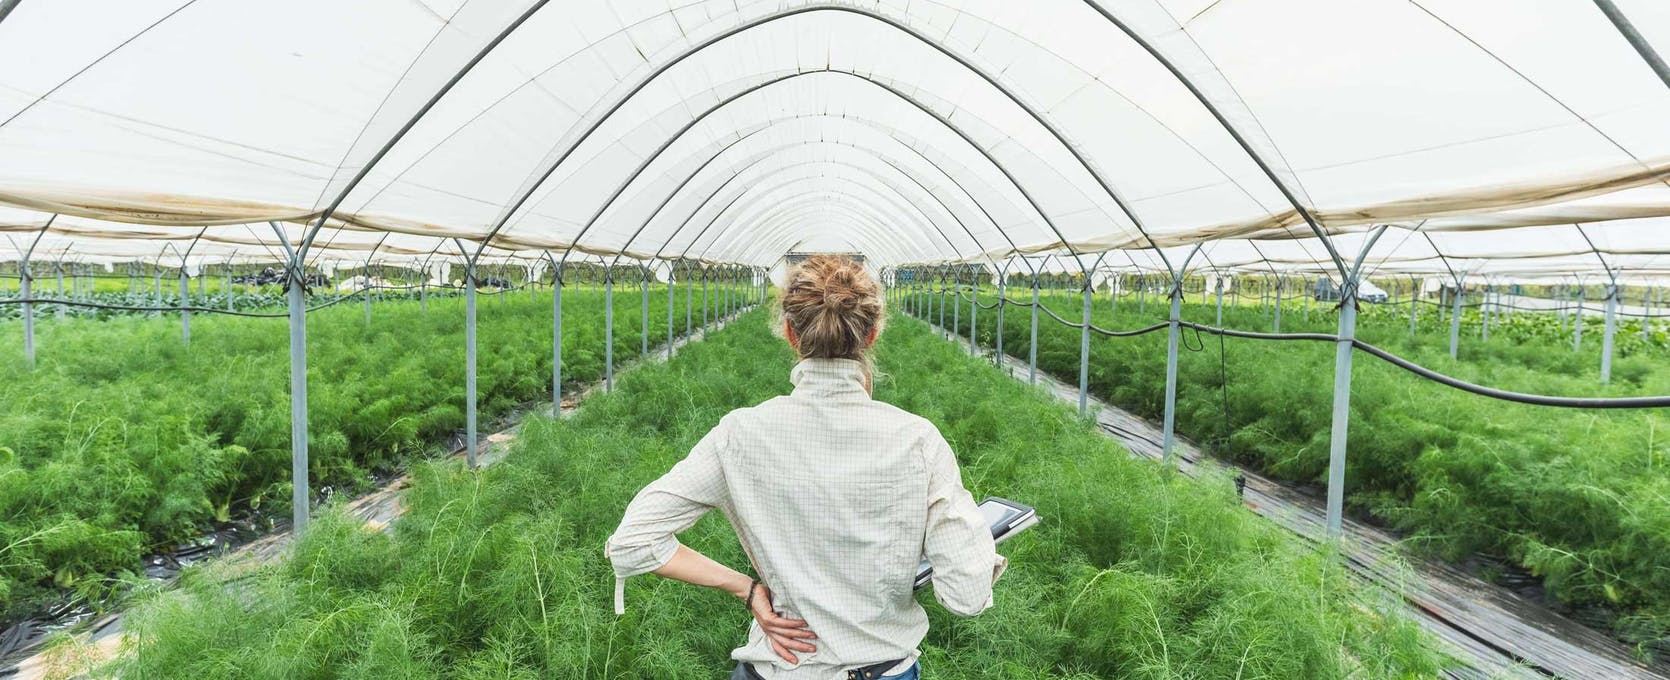 Owner oversees her portion of a cooperative crop